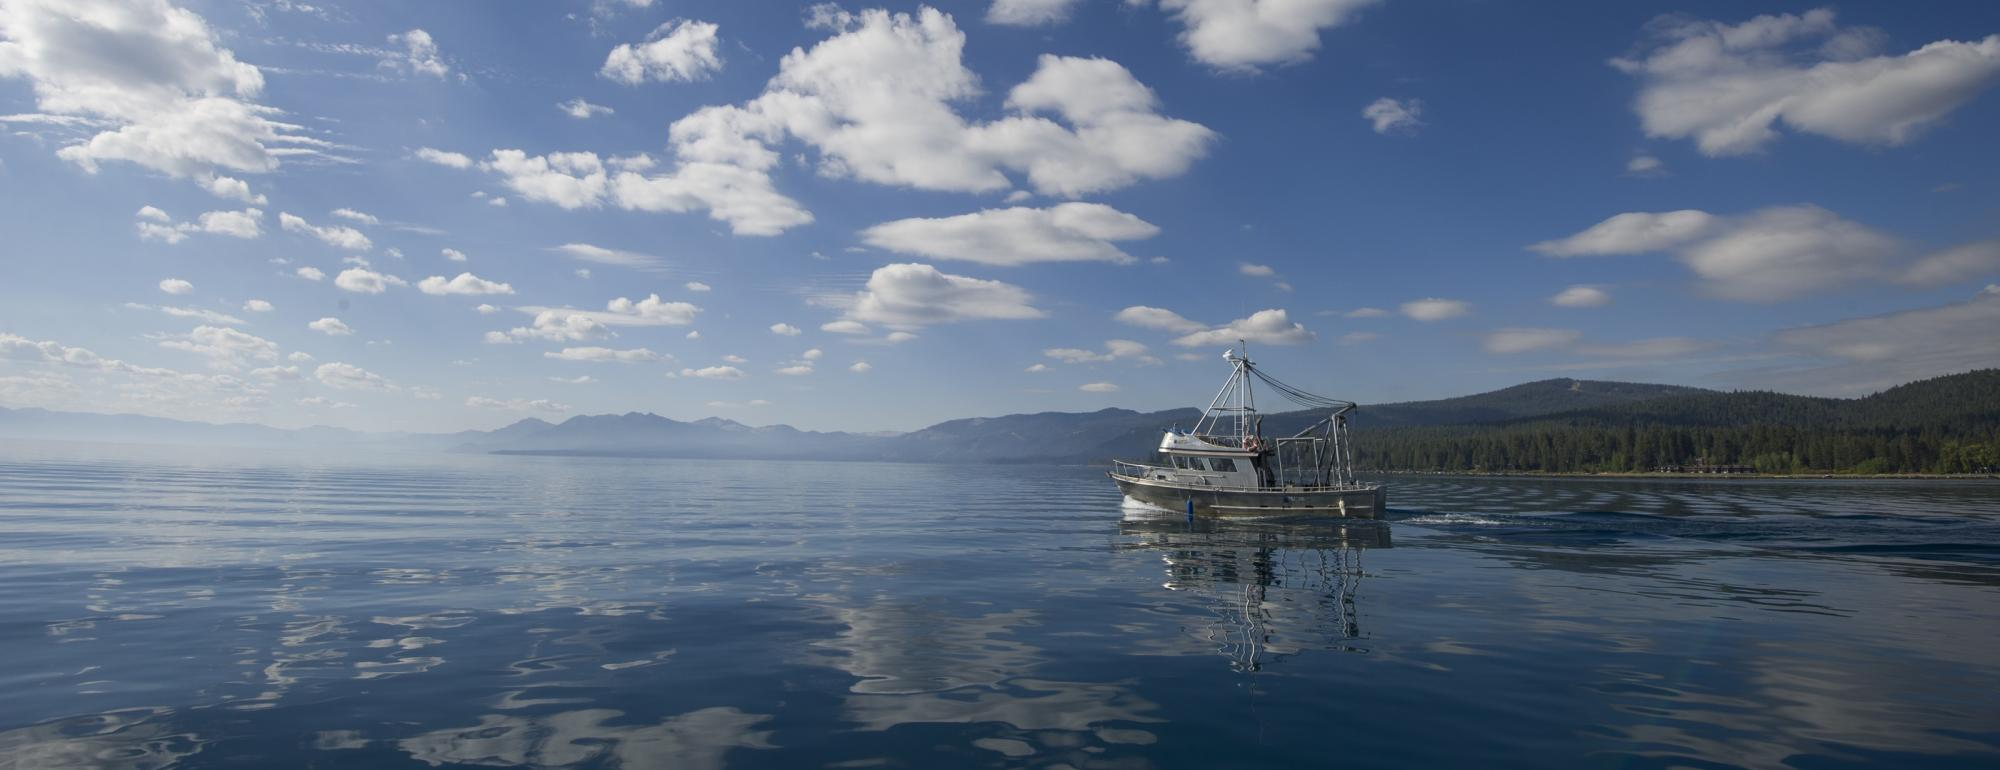 TERC Research Vessel on Lake Tahoe